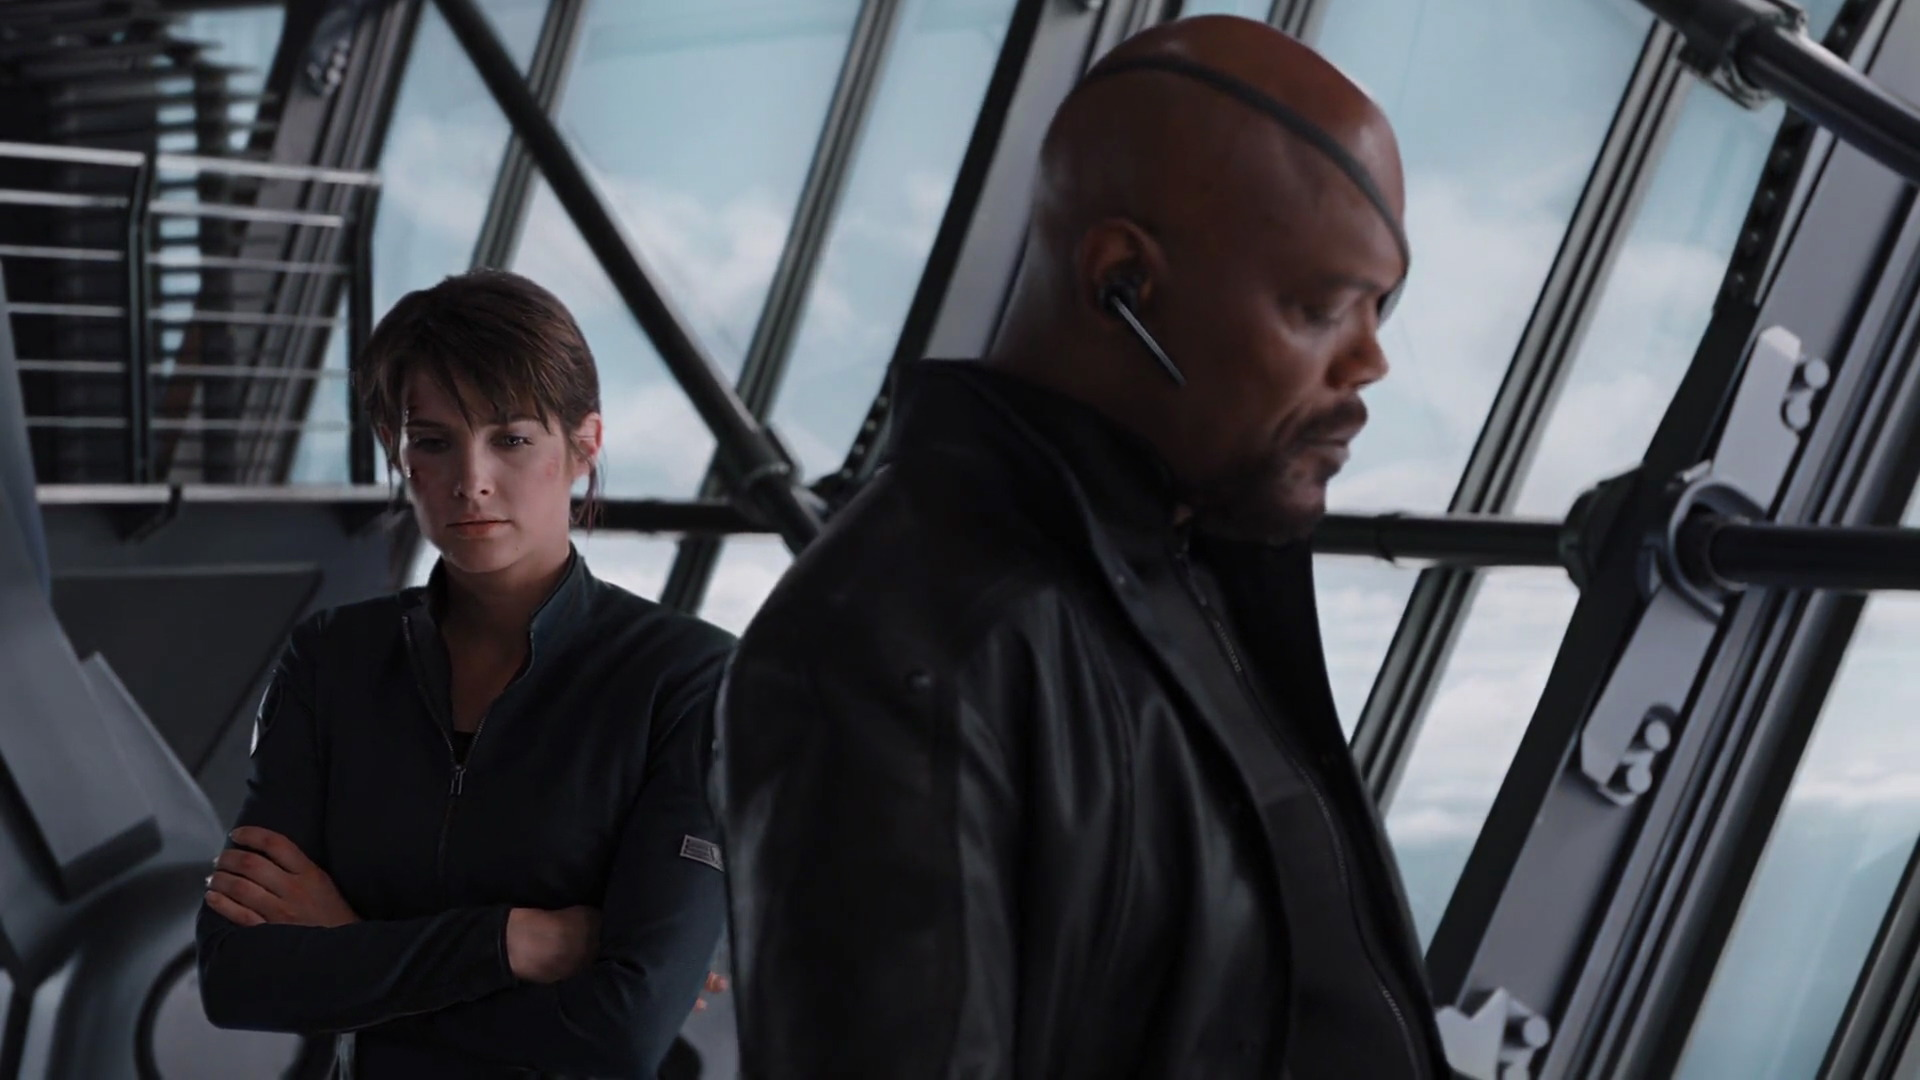 Nick Fury Maria Hill Avengers